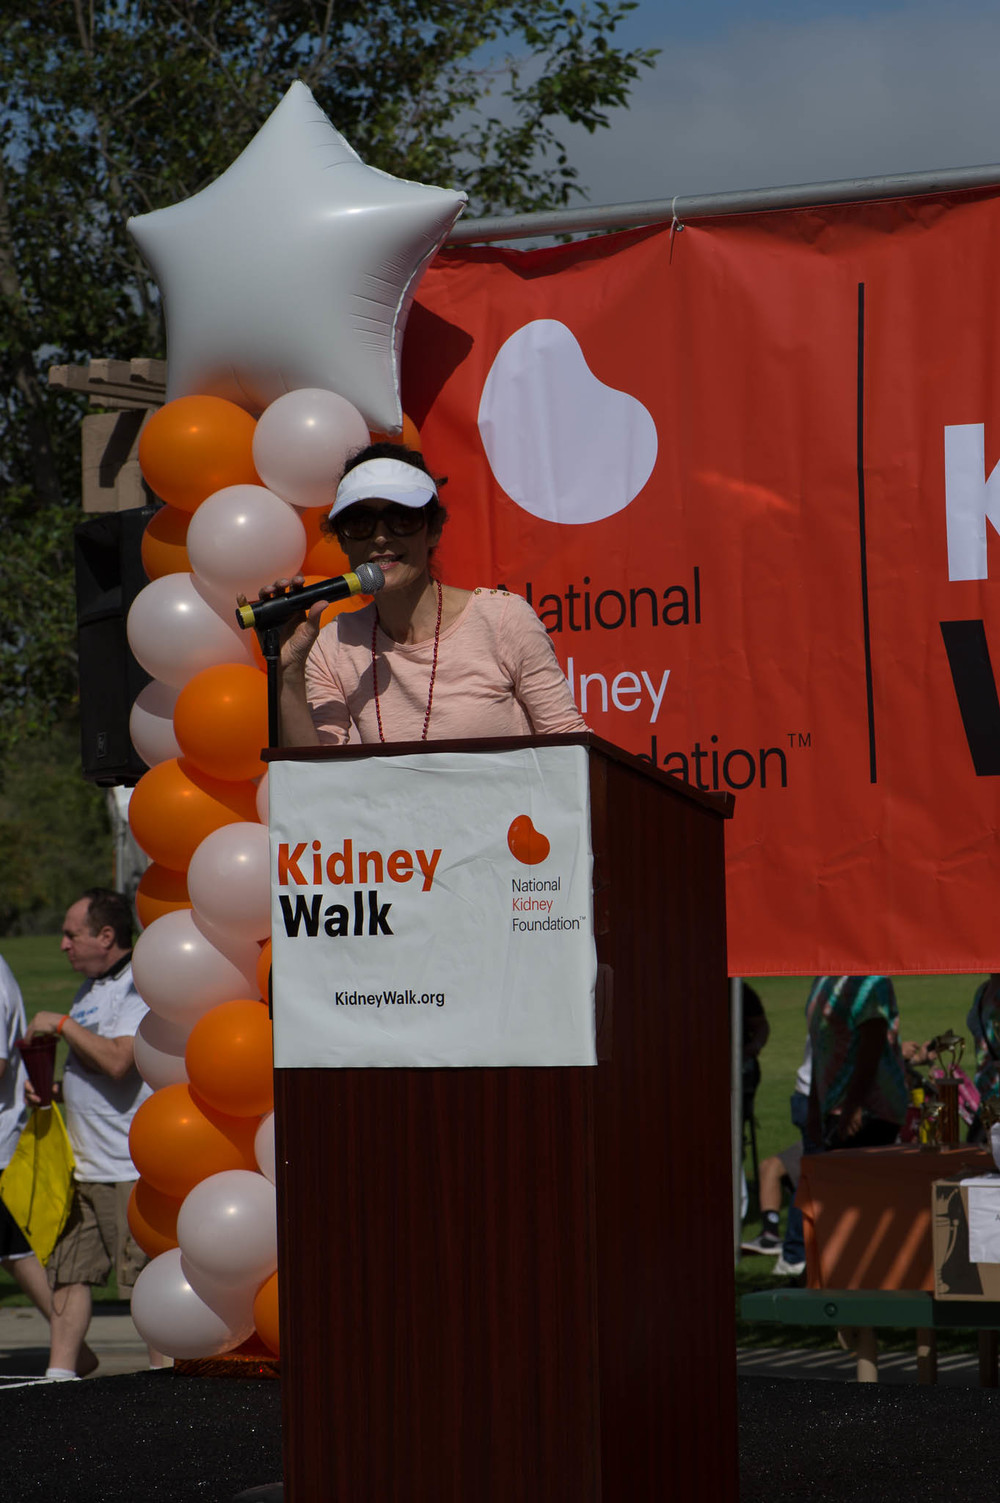 Pier Merone NKF Division President Welcoming the Walkers